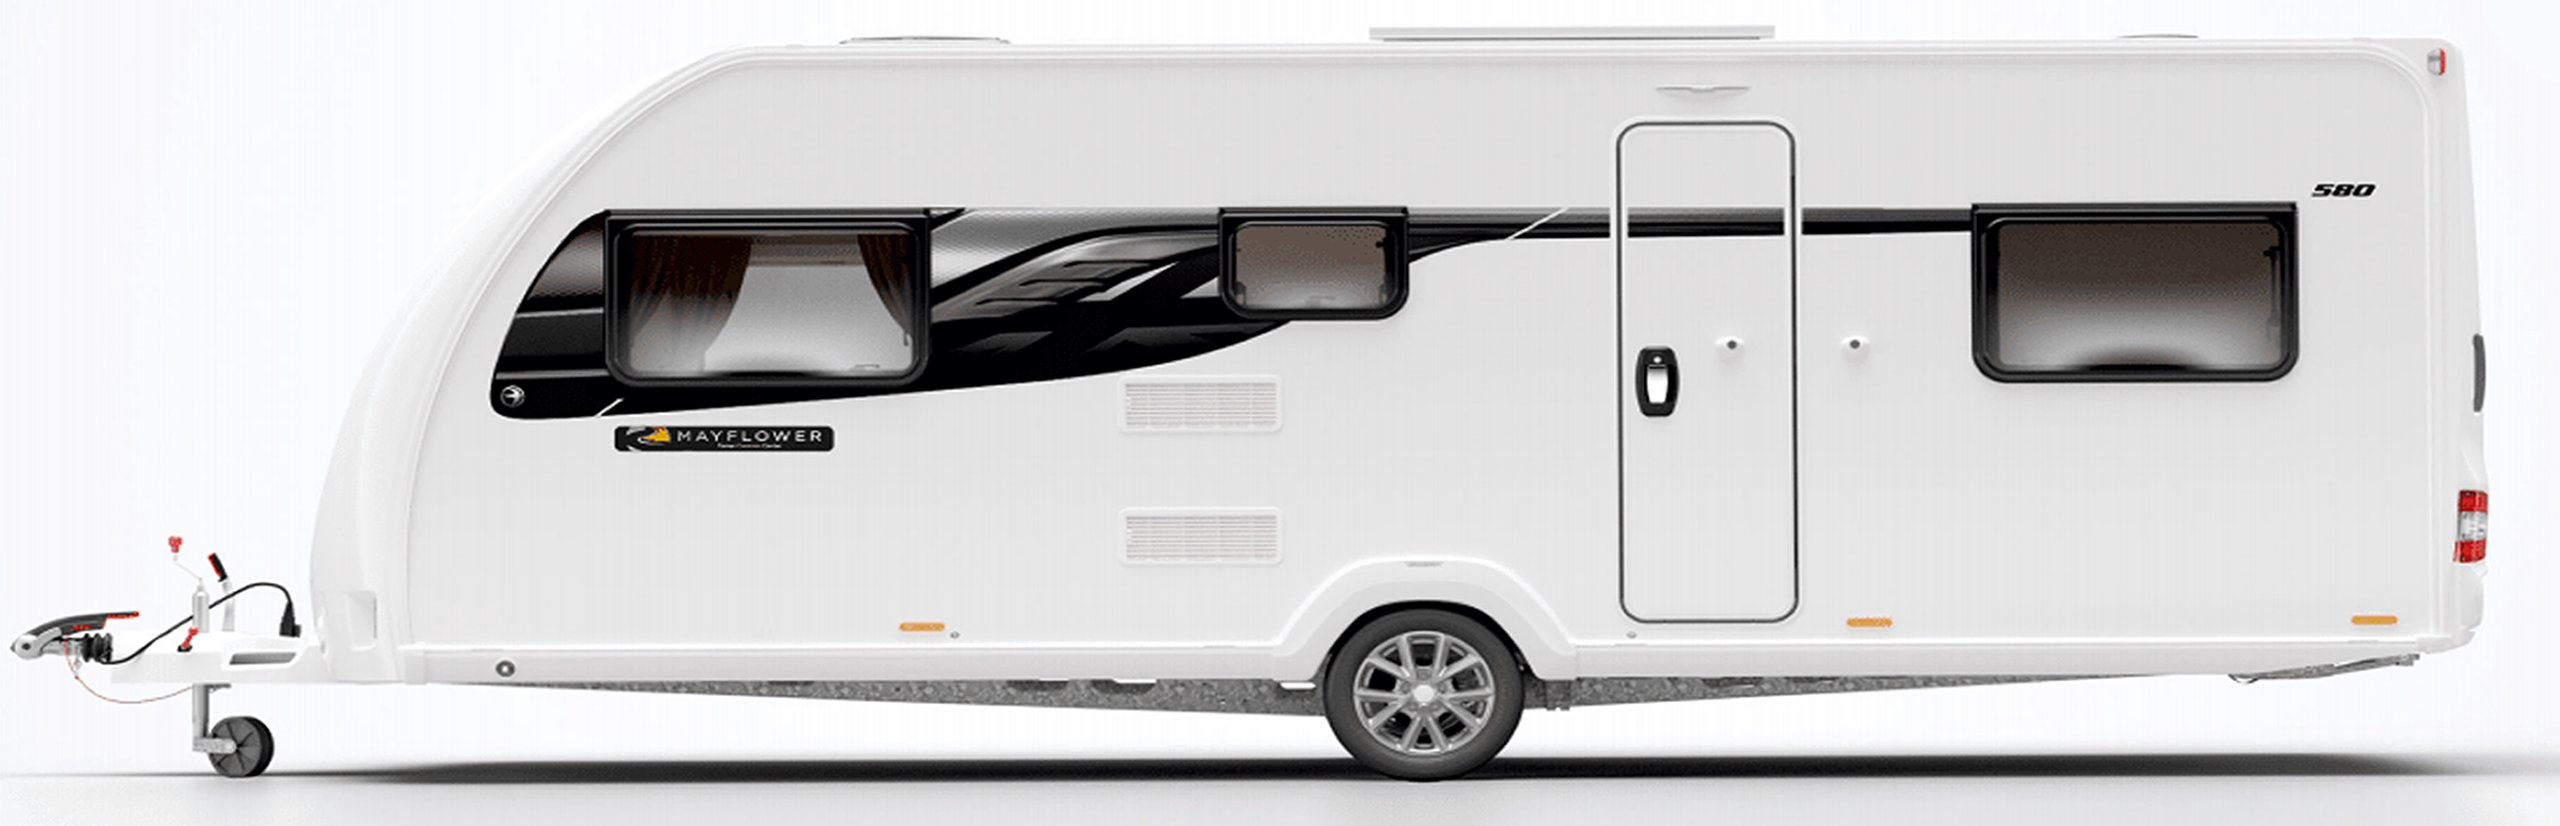 2021 Swift Mayflower Special Edition: Side view image of the Mayflower caravan.